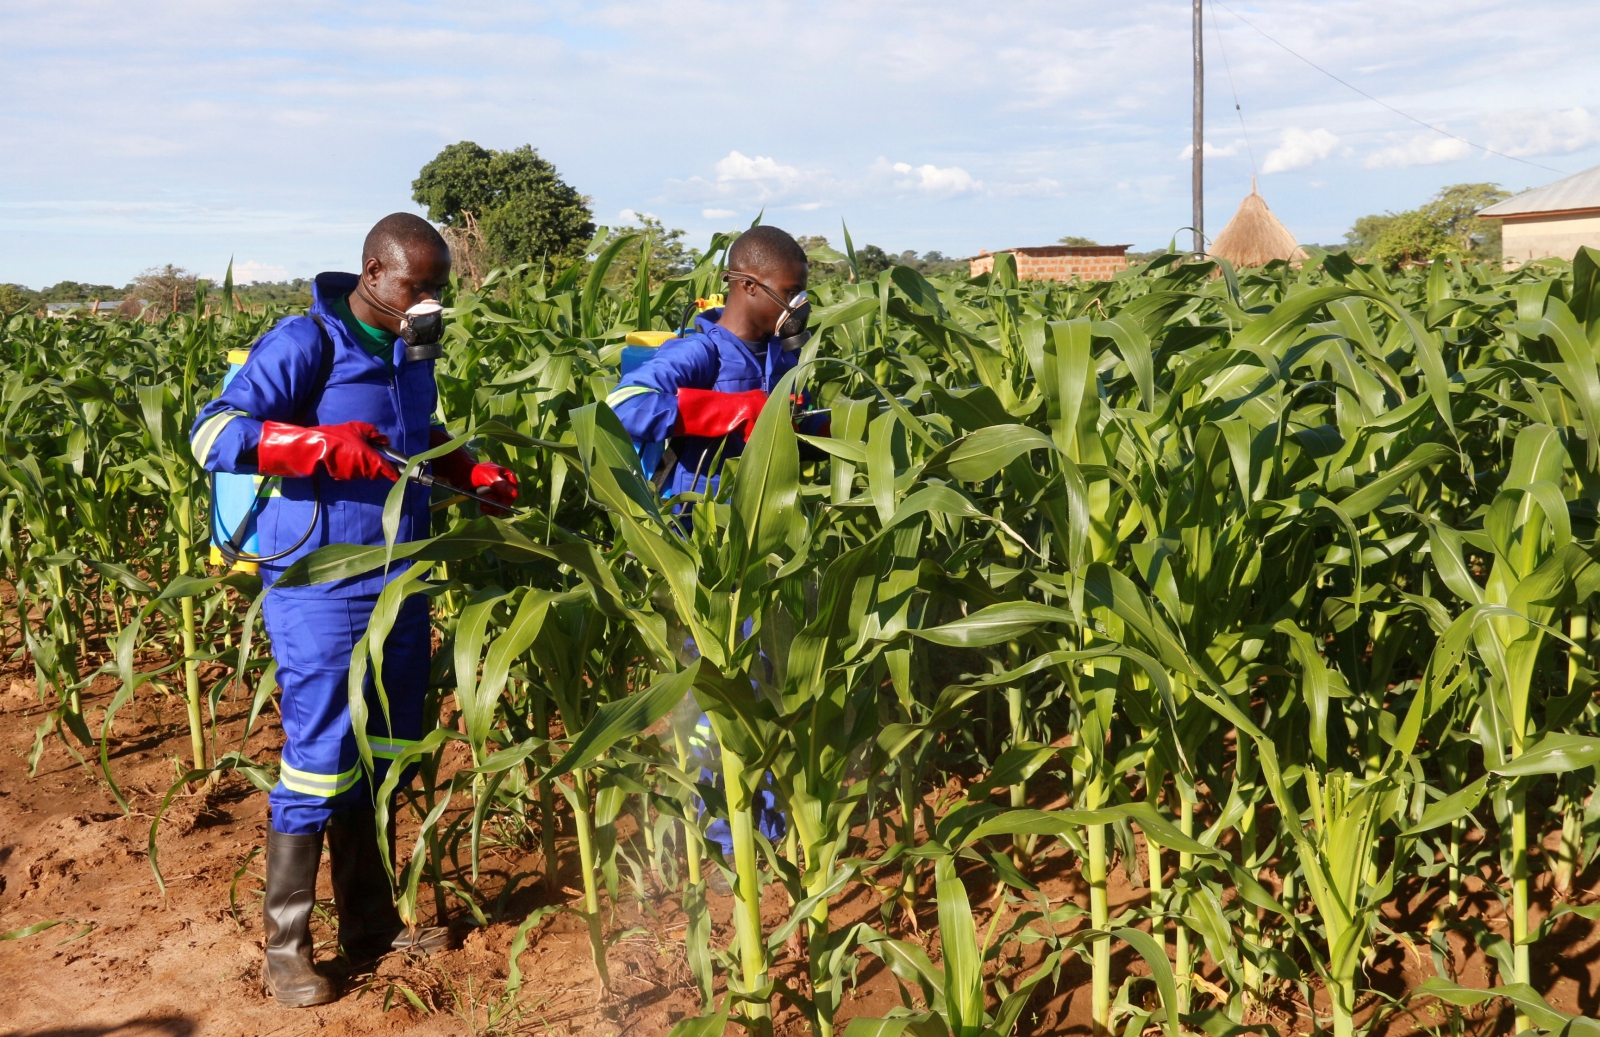 Crop destroying armyworm marches across mainland Africa